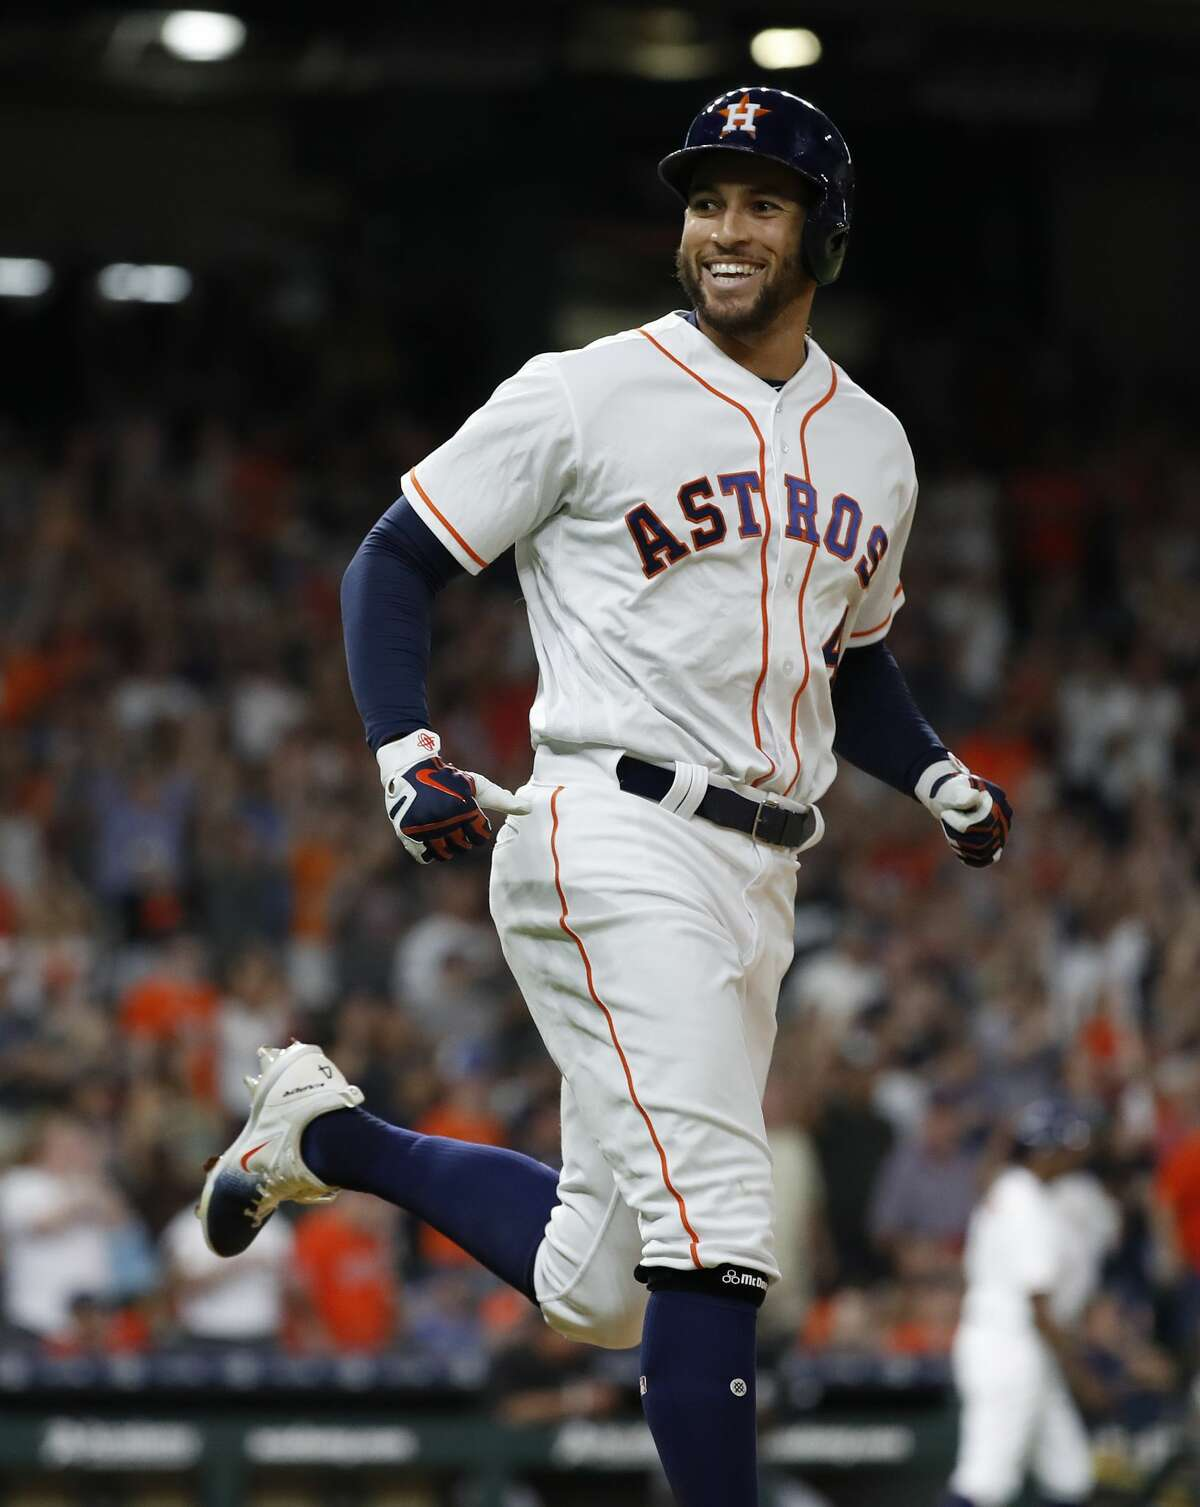 HOUSTON ASTROS WALK-UP SONGS George Springer Current song: No Cap (Future/Young Thug) Listen here Previous songs this season: Butterfly Effect (Travis Scott) Listen here Three Little Birds (Bob Marley) Listen here